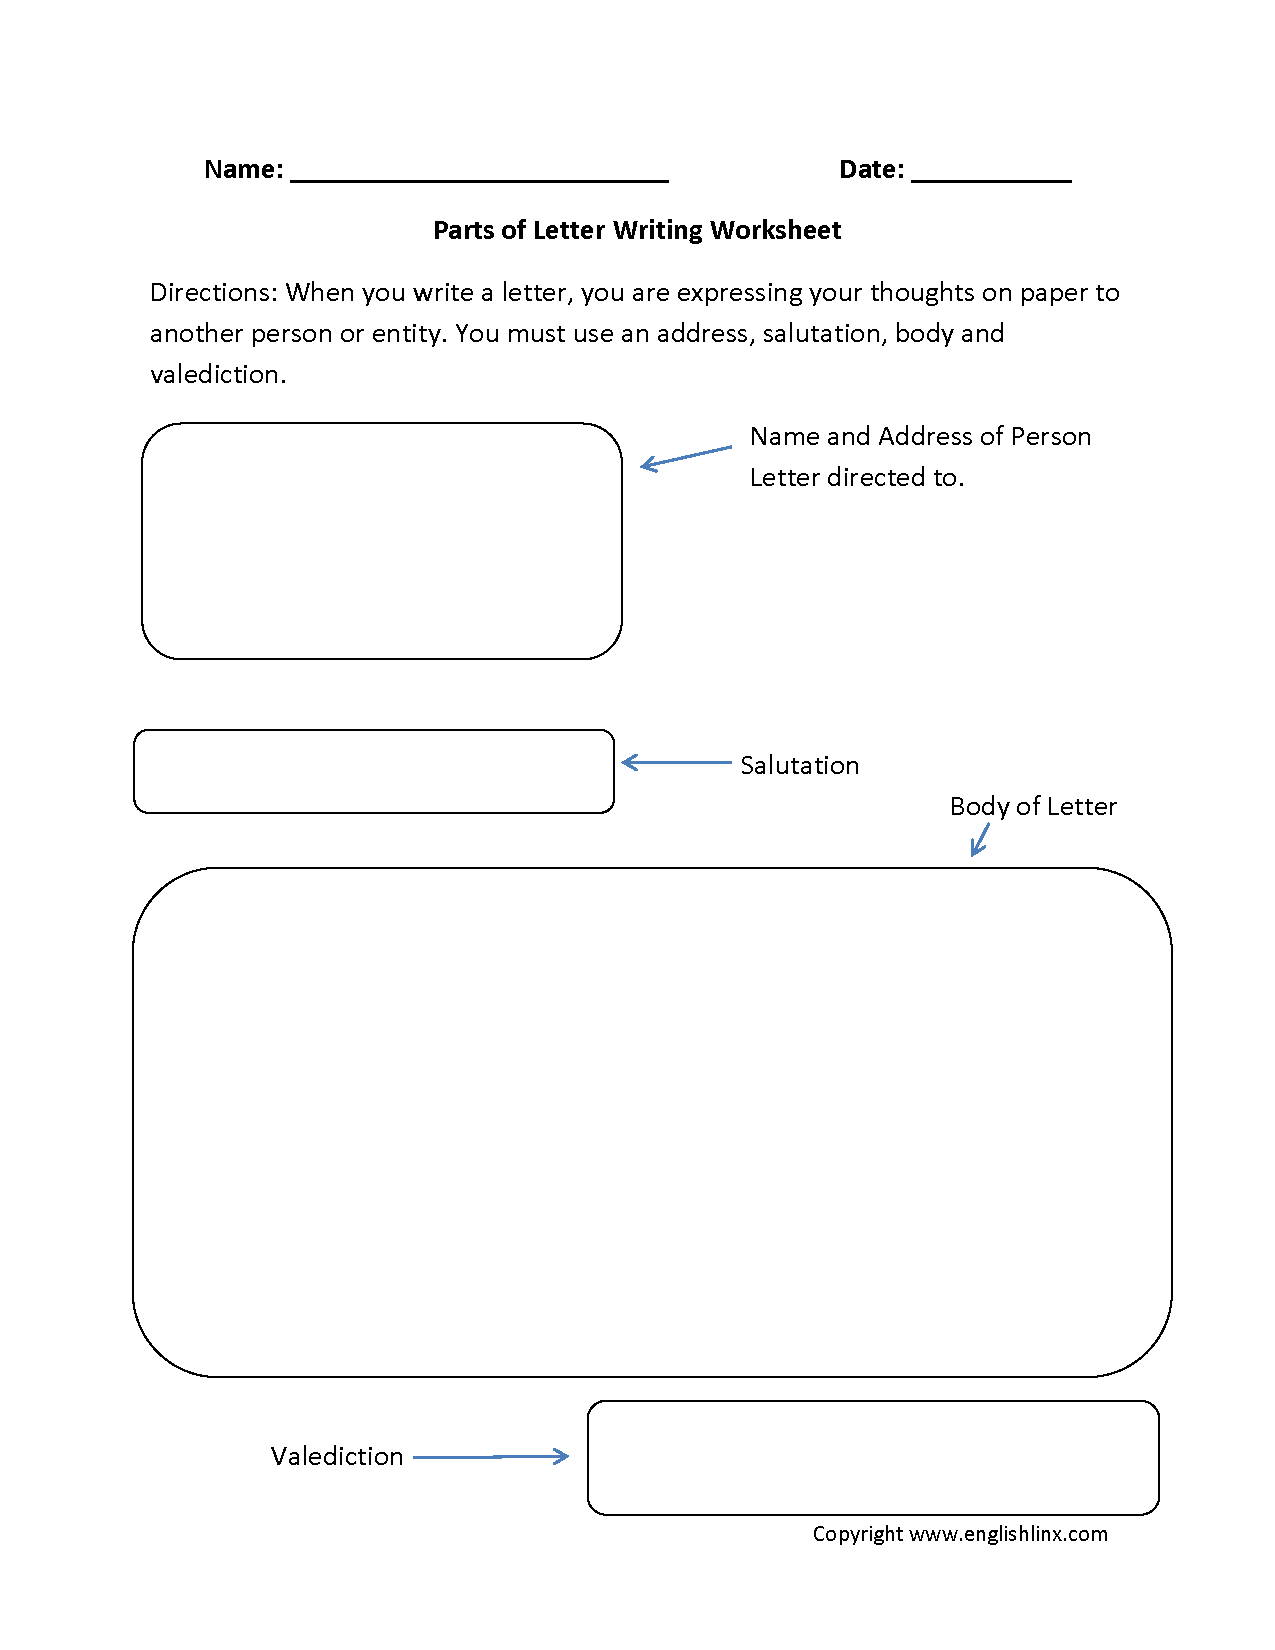 Worksheets Parts Of A Letter Worksheet letter writing worksheets parts of worksheets